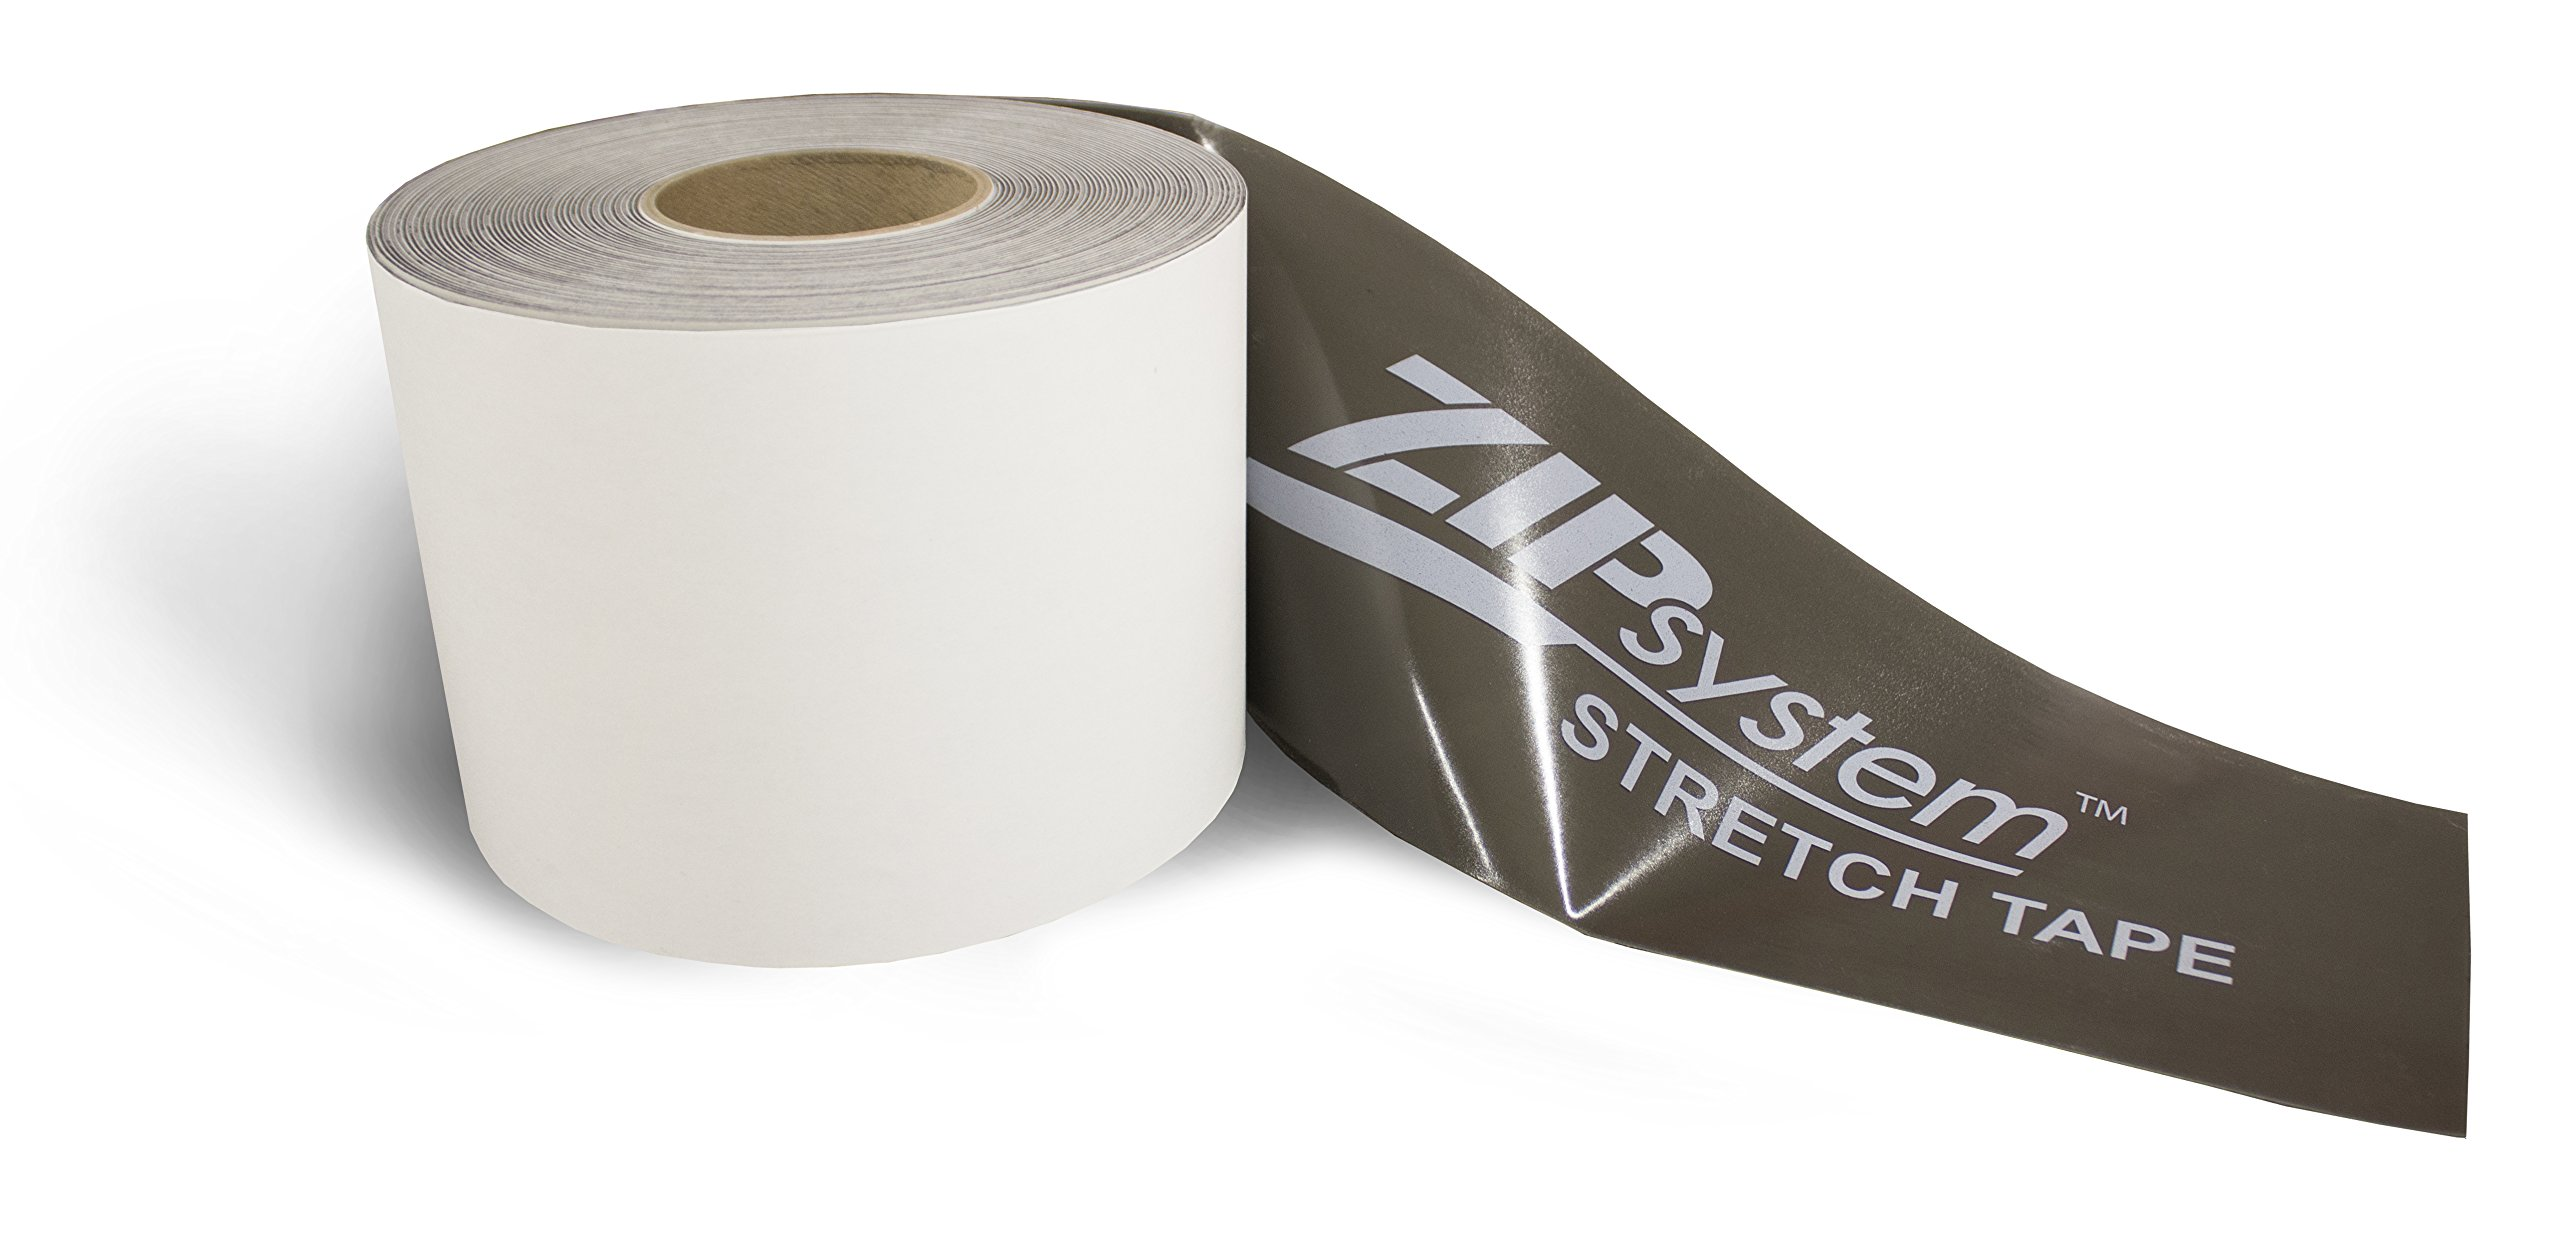 Huber ZIP System Stretch Tape | 6 inches x 20 feet | Self-Adhesive Flashing for Doors-Windows Rough Openings B075GWD83R by ZIP System